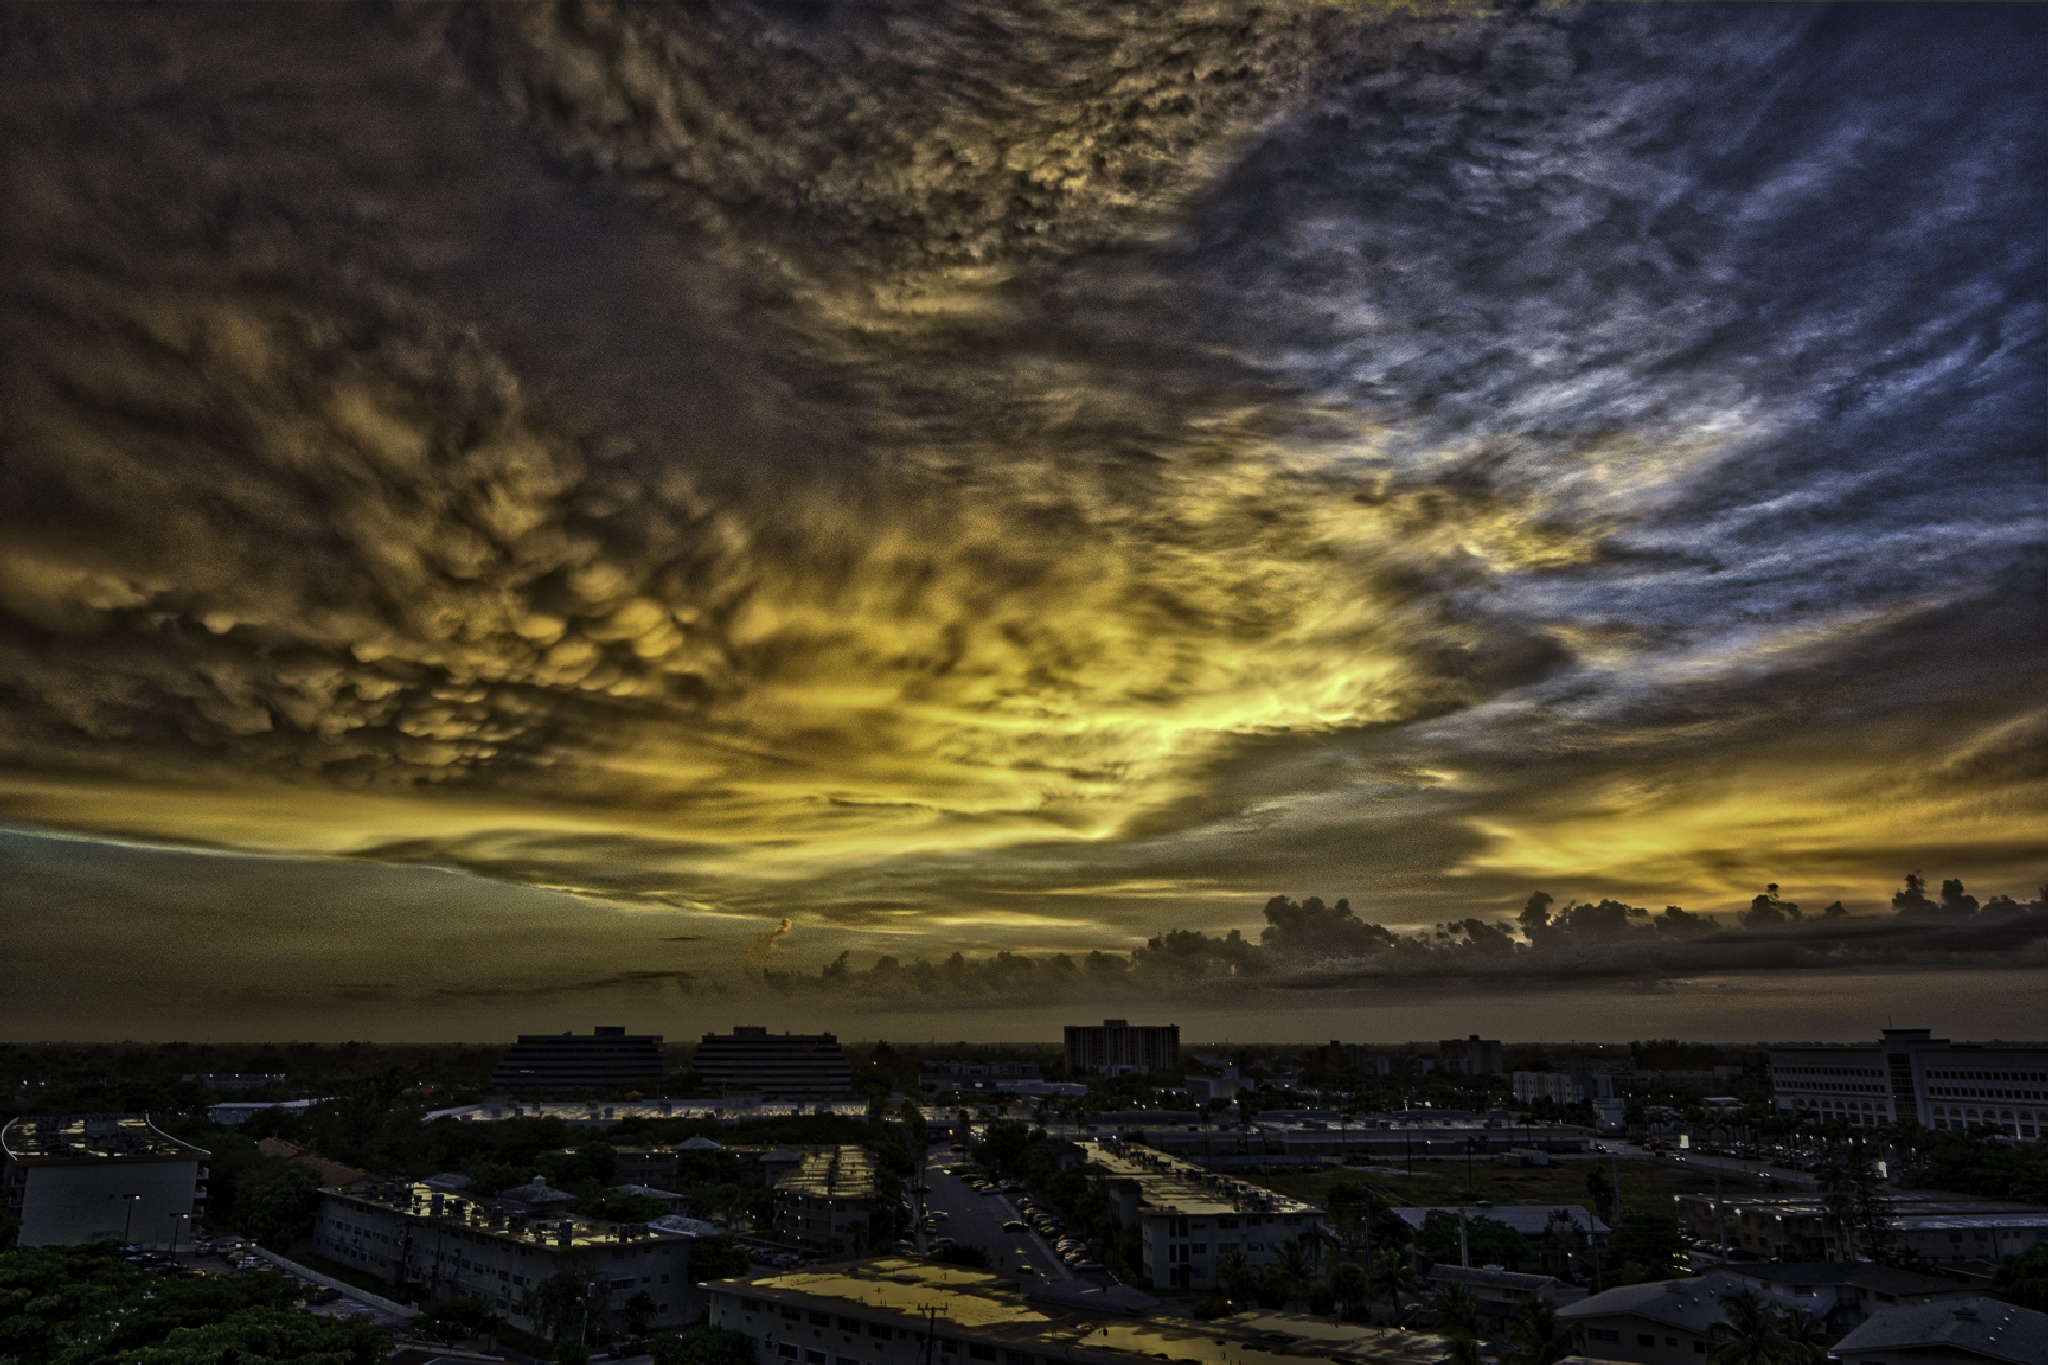 Dramatic Sunset by themagiclensphotography